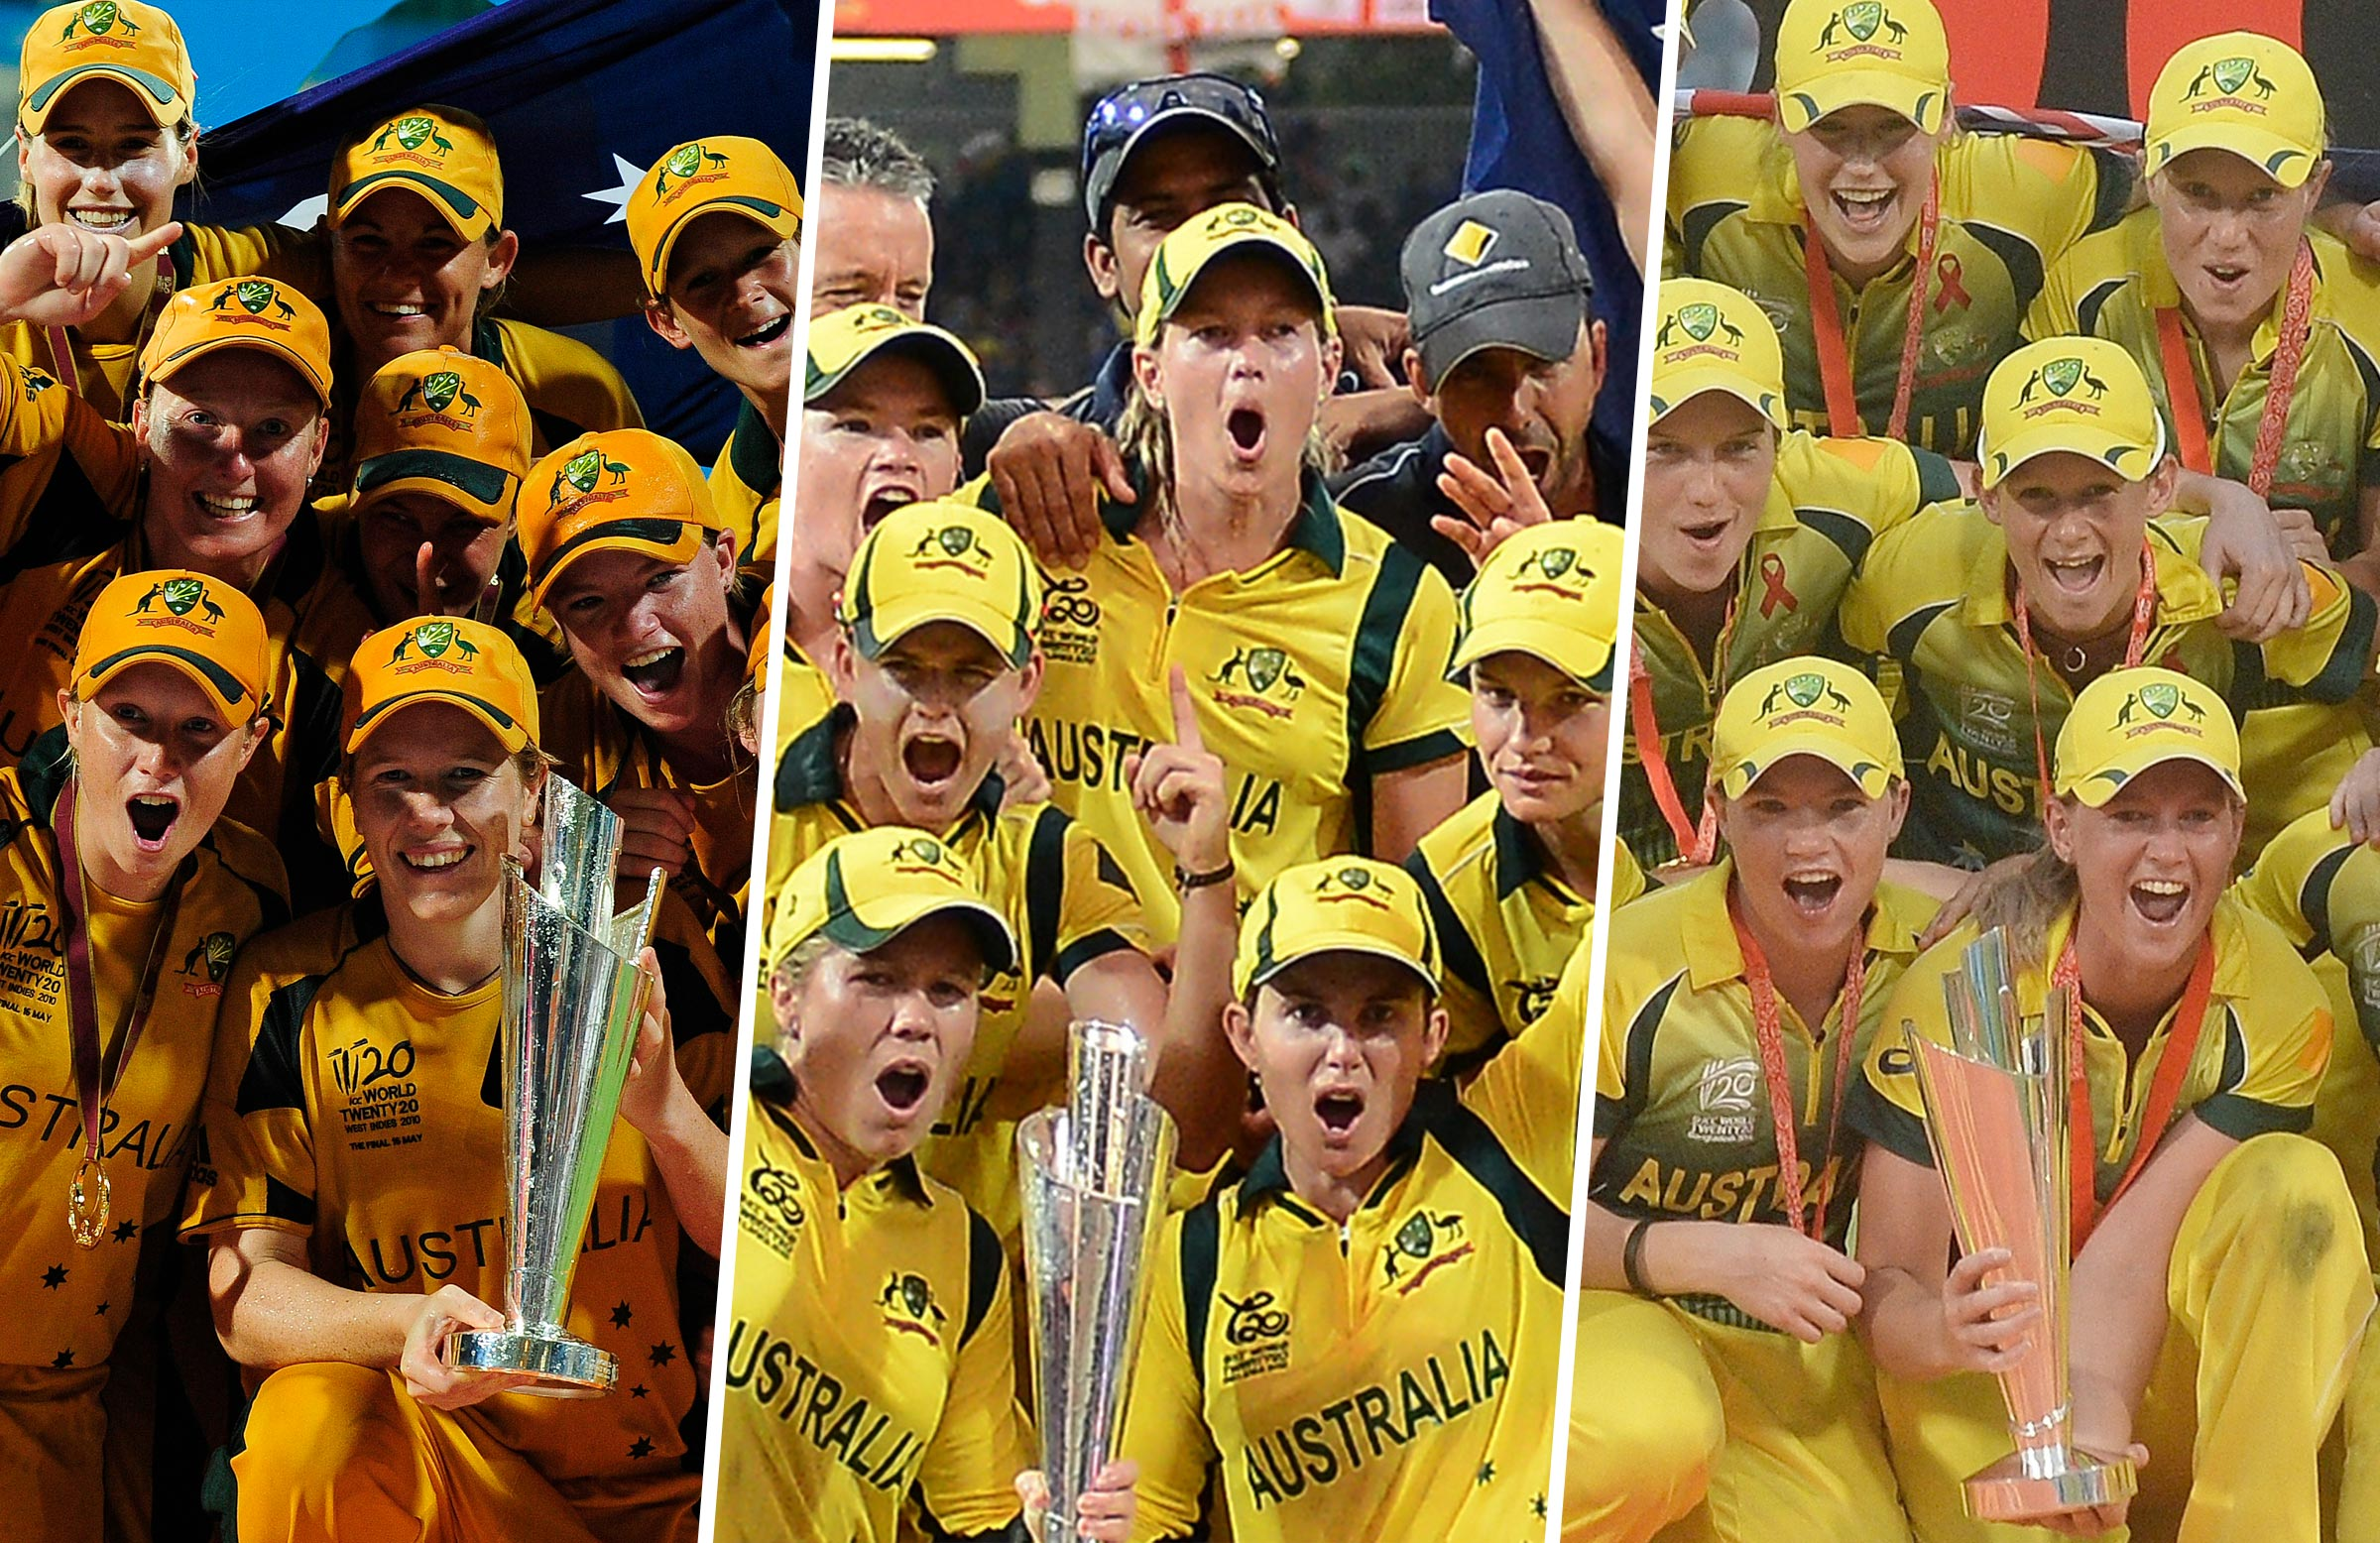 Australia took out the 2010, 2012 and 2014 titles in gold // Getty